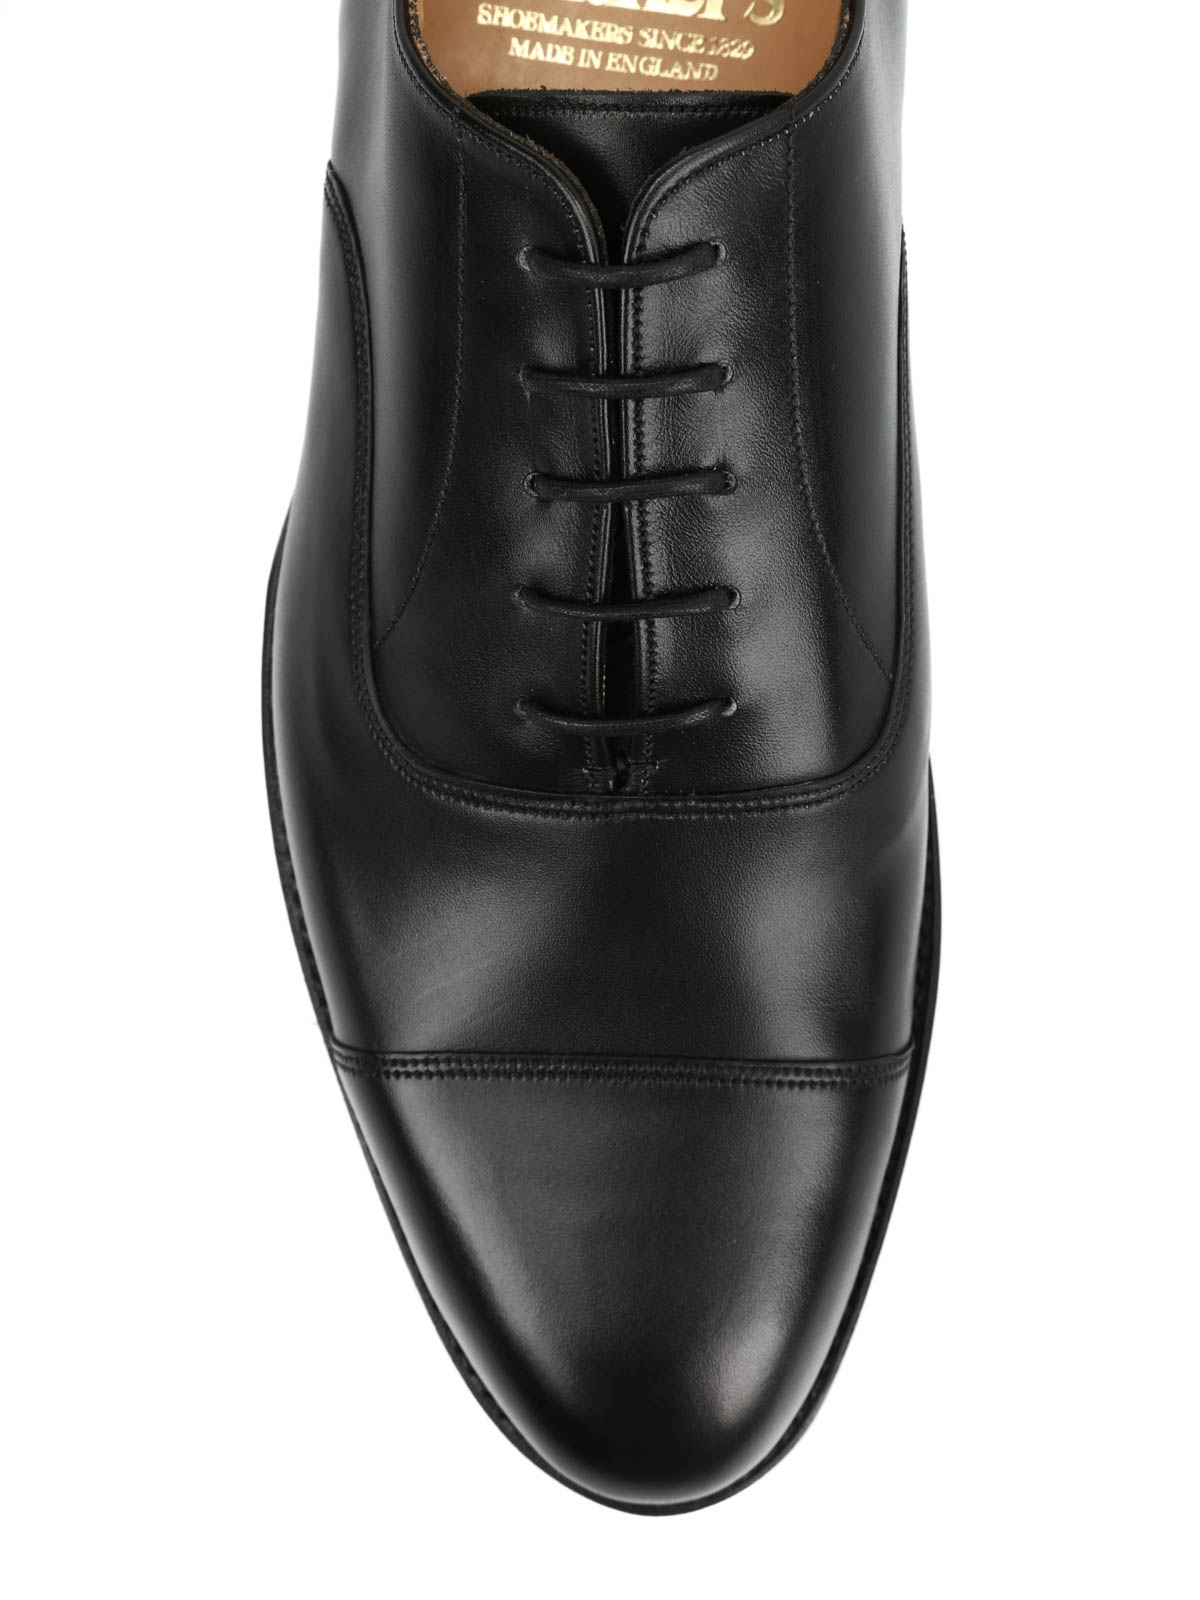 Oxford leather lace-ups by Tricker's